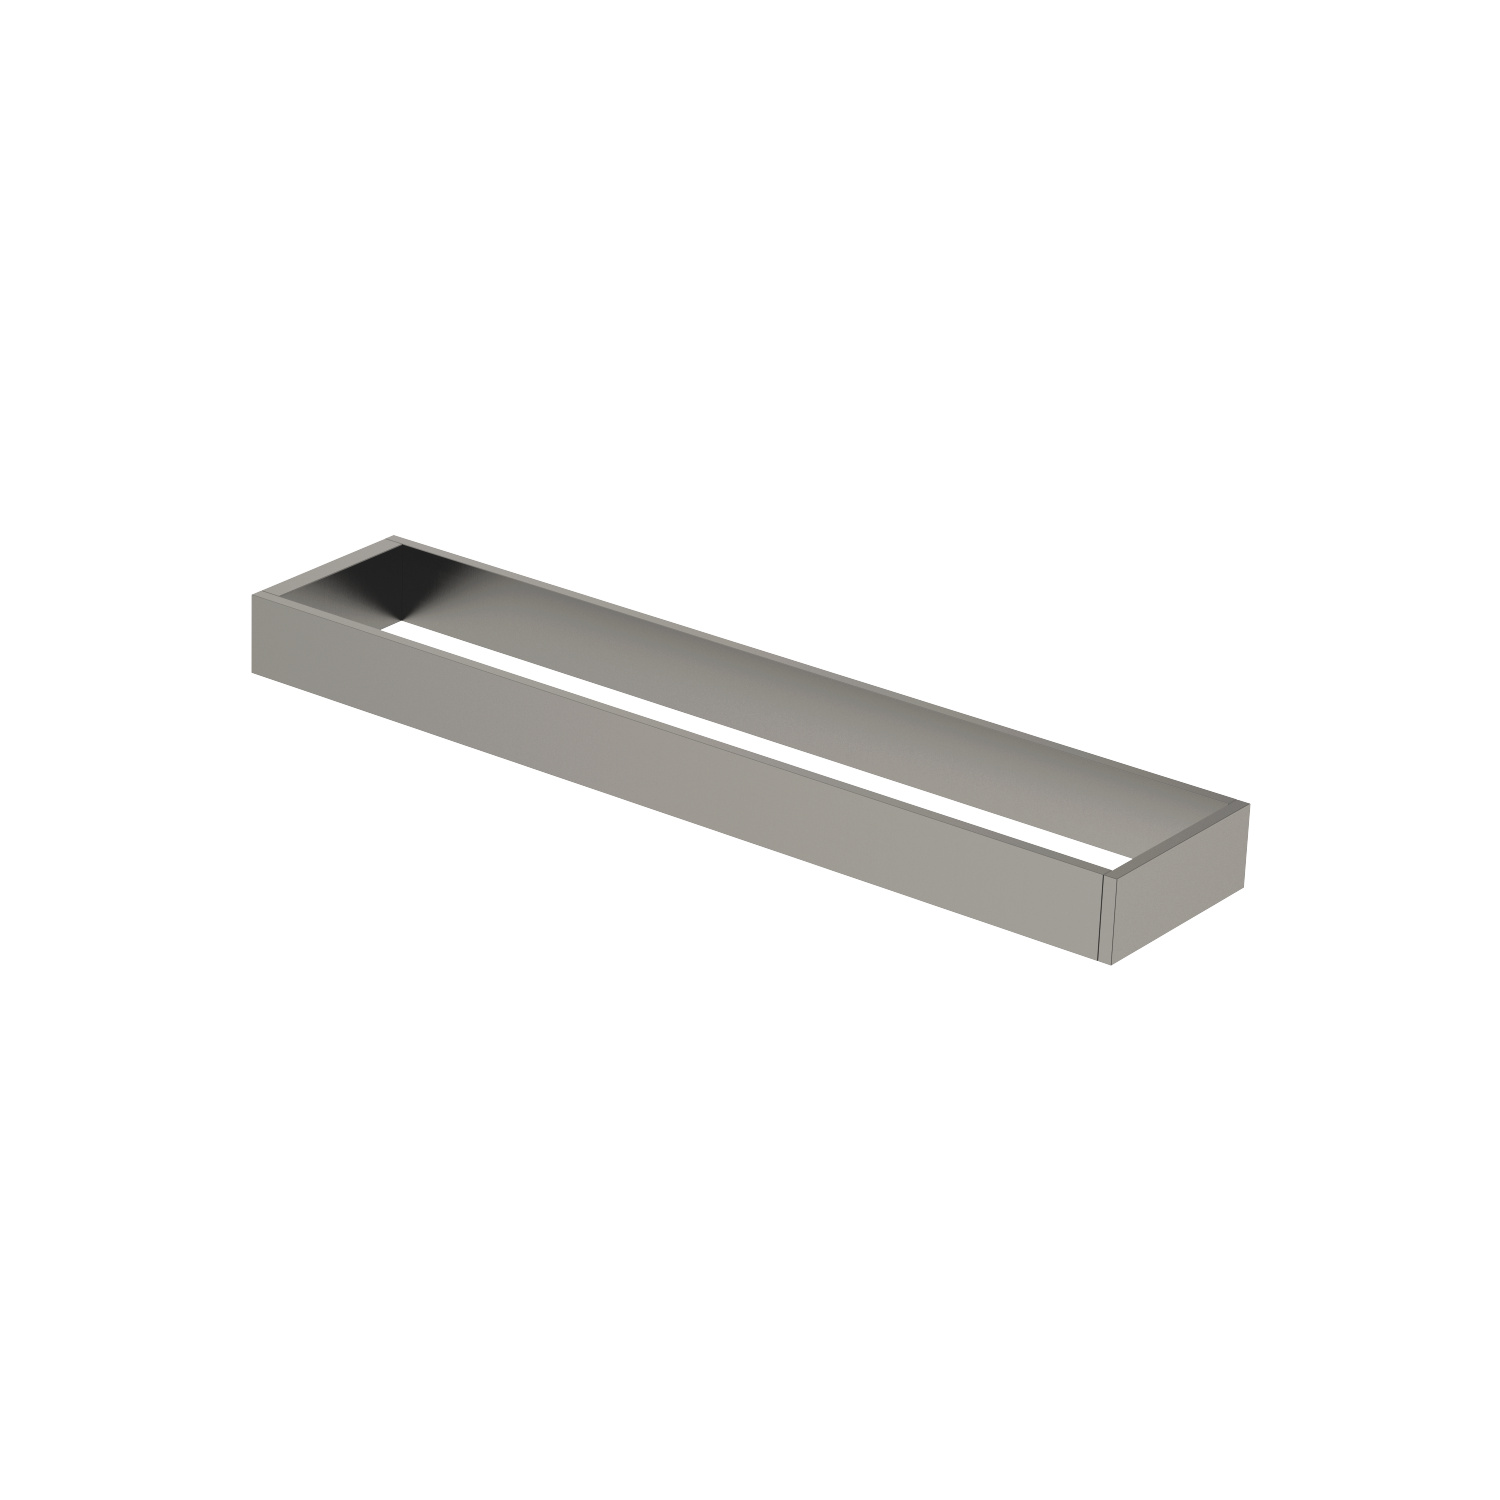 Towel bar in two parts non-swivel - Dark Platinum matt